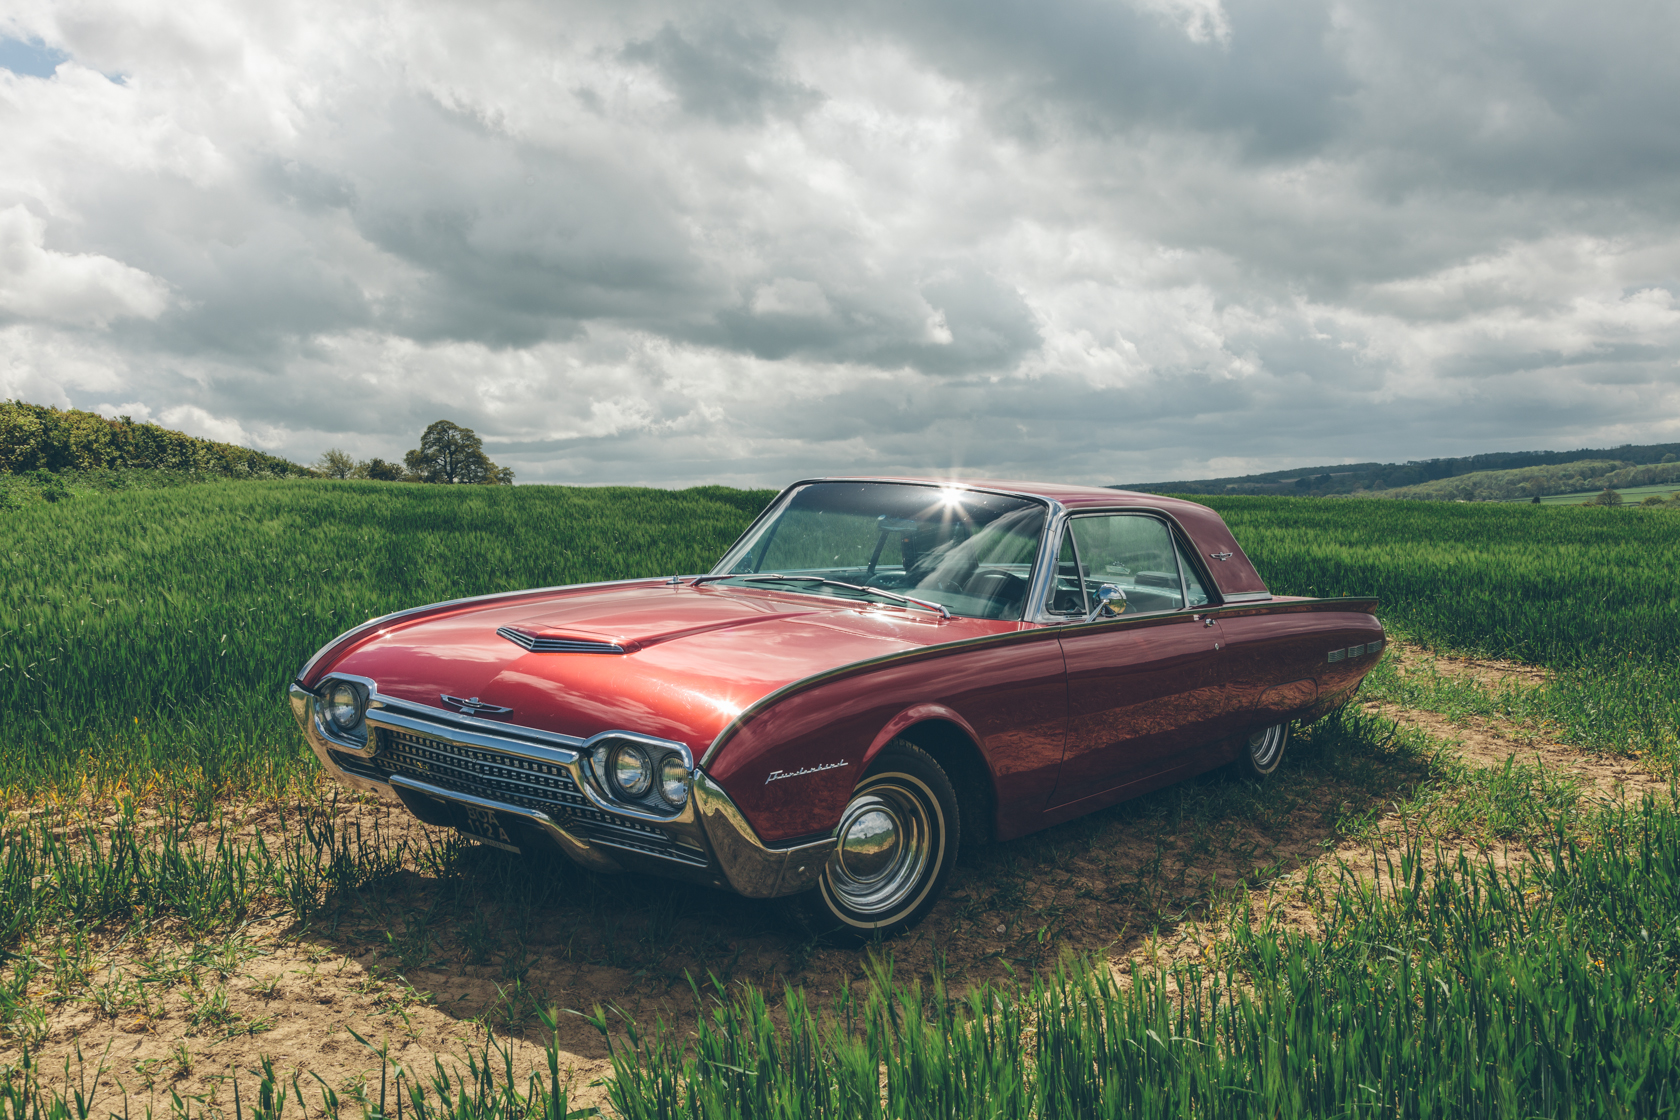 classic ford thunderbird parked in a field